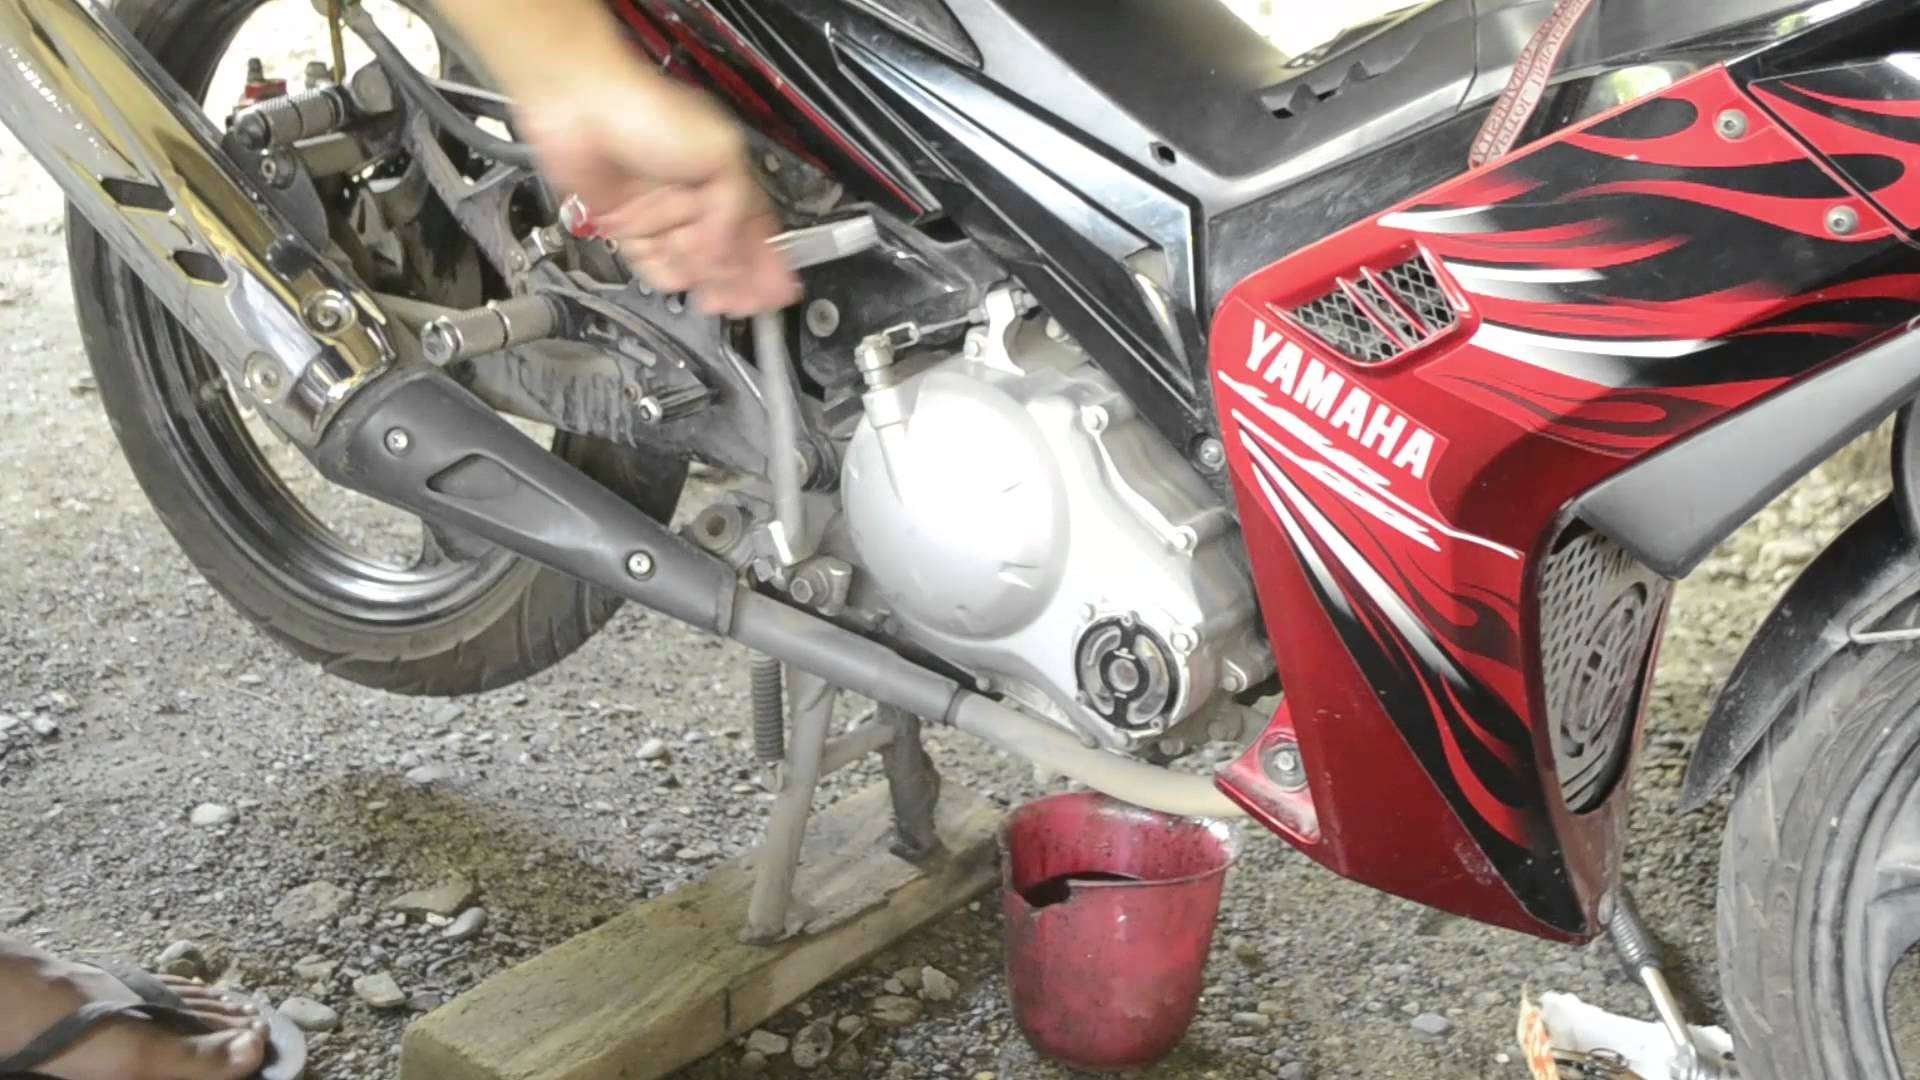 Yamaha Crypton R Engine Diagram How to Change the Oil and Oil Filter Of Your Motorcycle Of Yamaha Crypton R Engine Diagram